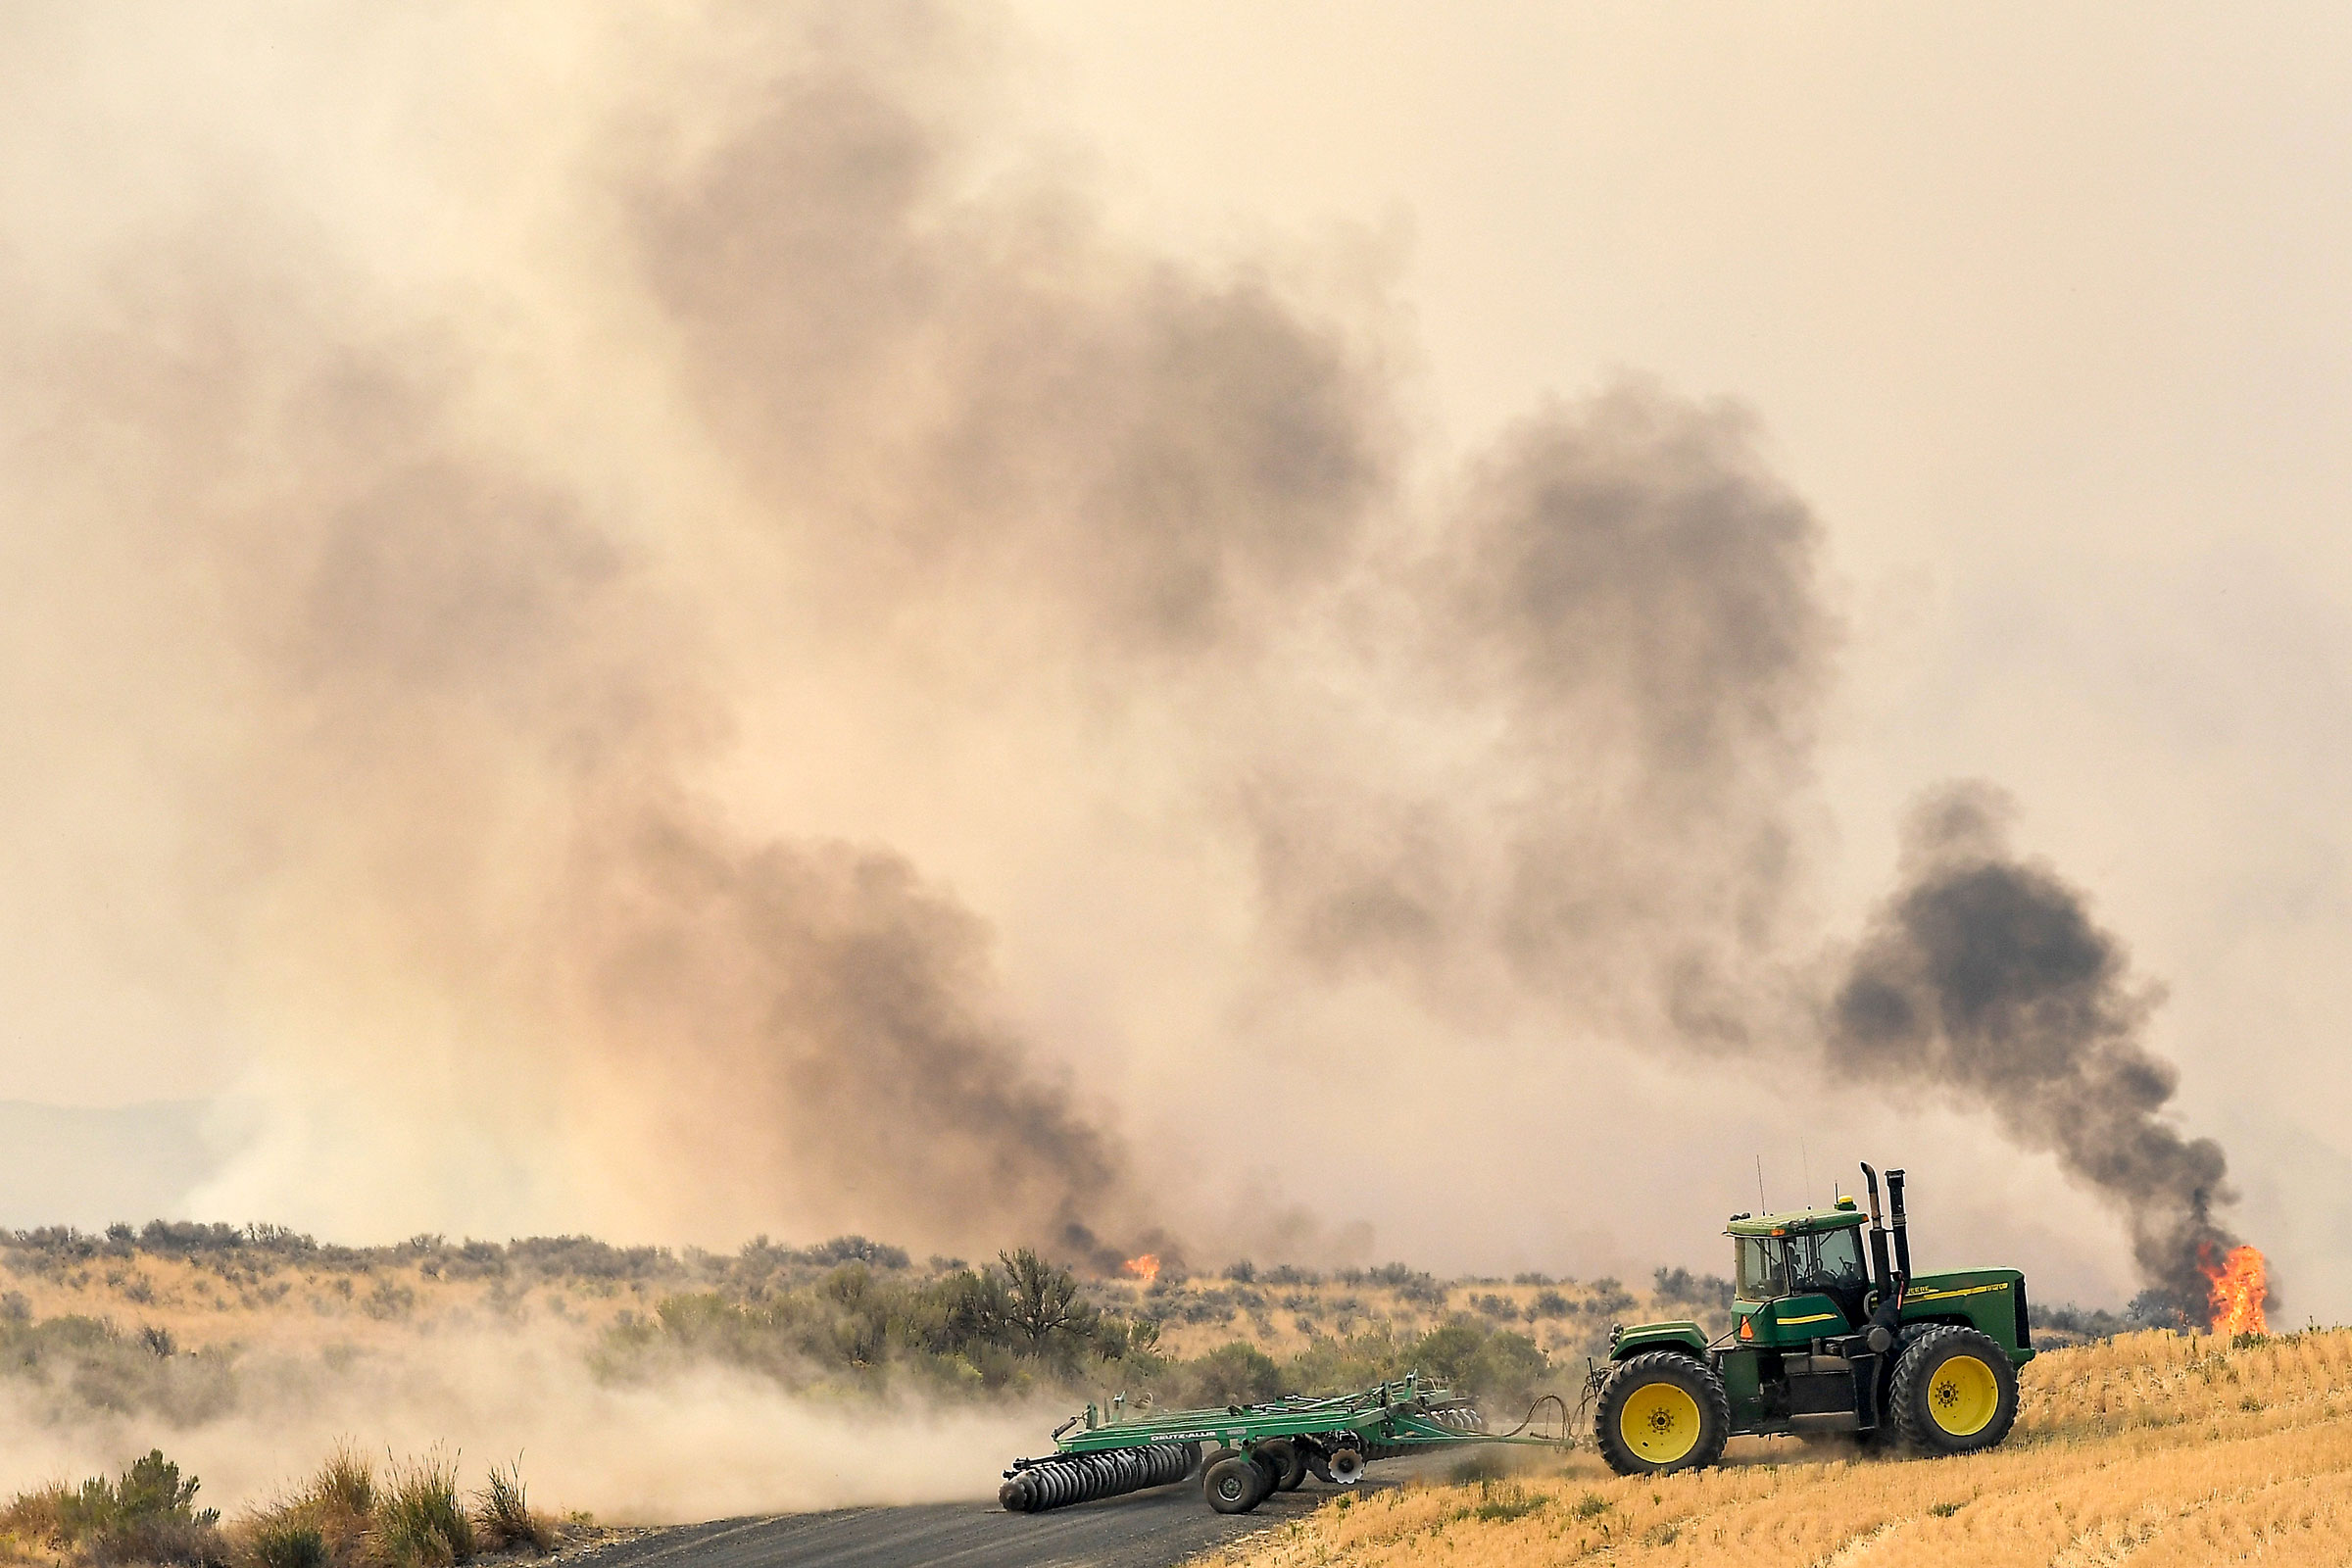 Pearl Hill fire moving towards Mansfield, Washington, September 8th, 2020. Tyler Tjomsland/The Spokesman Review/AP